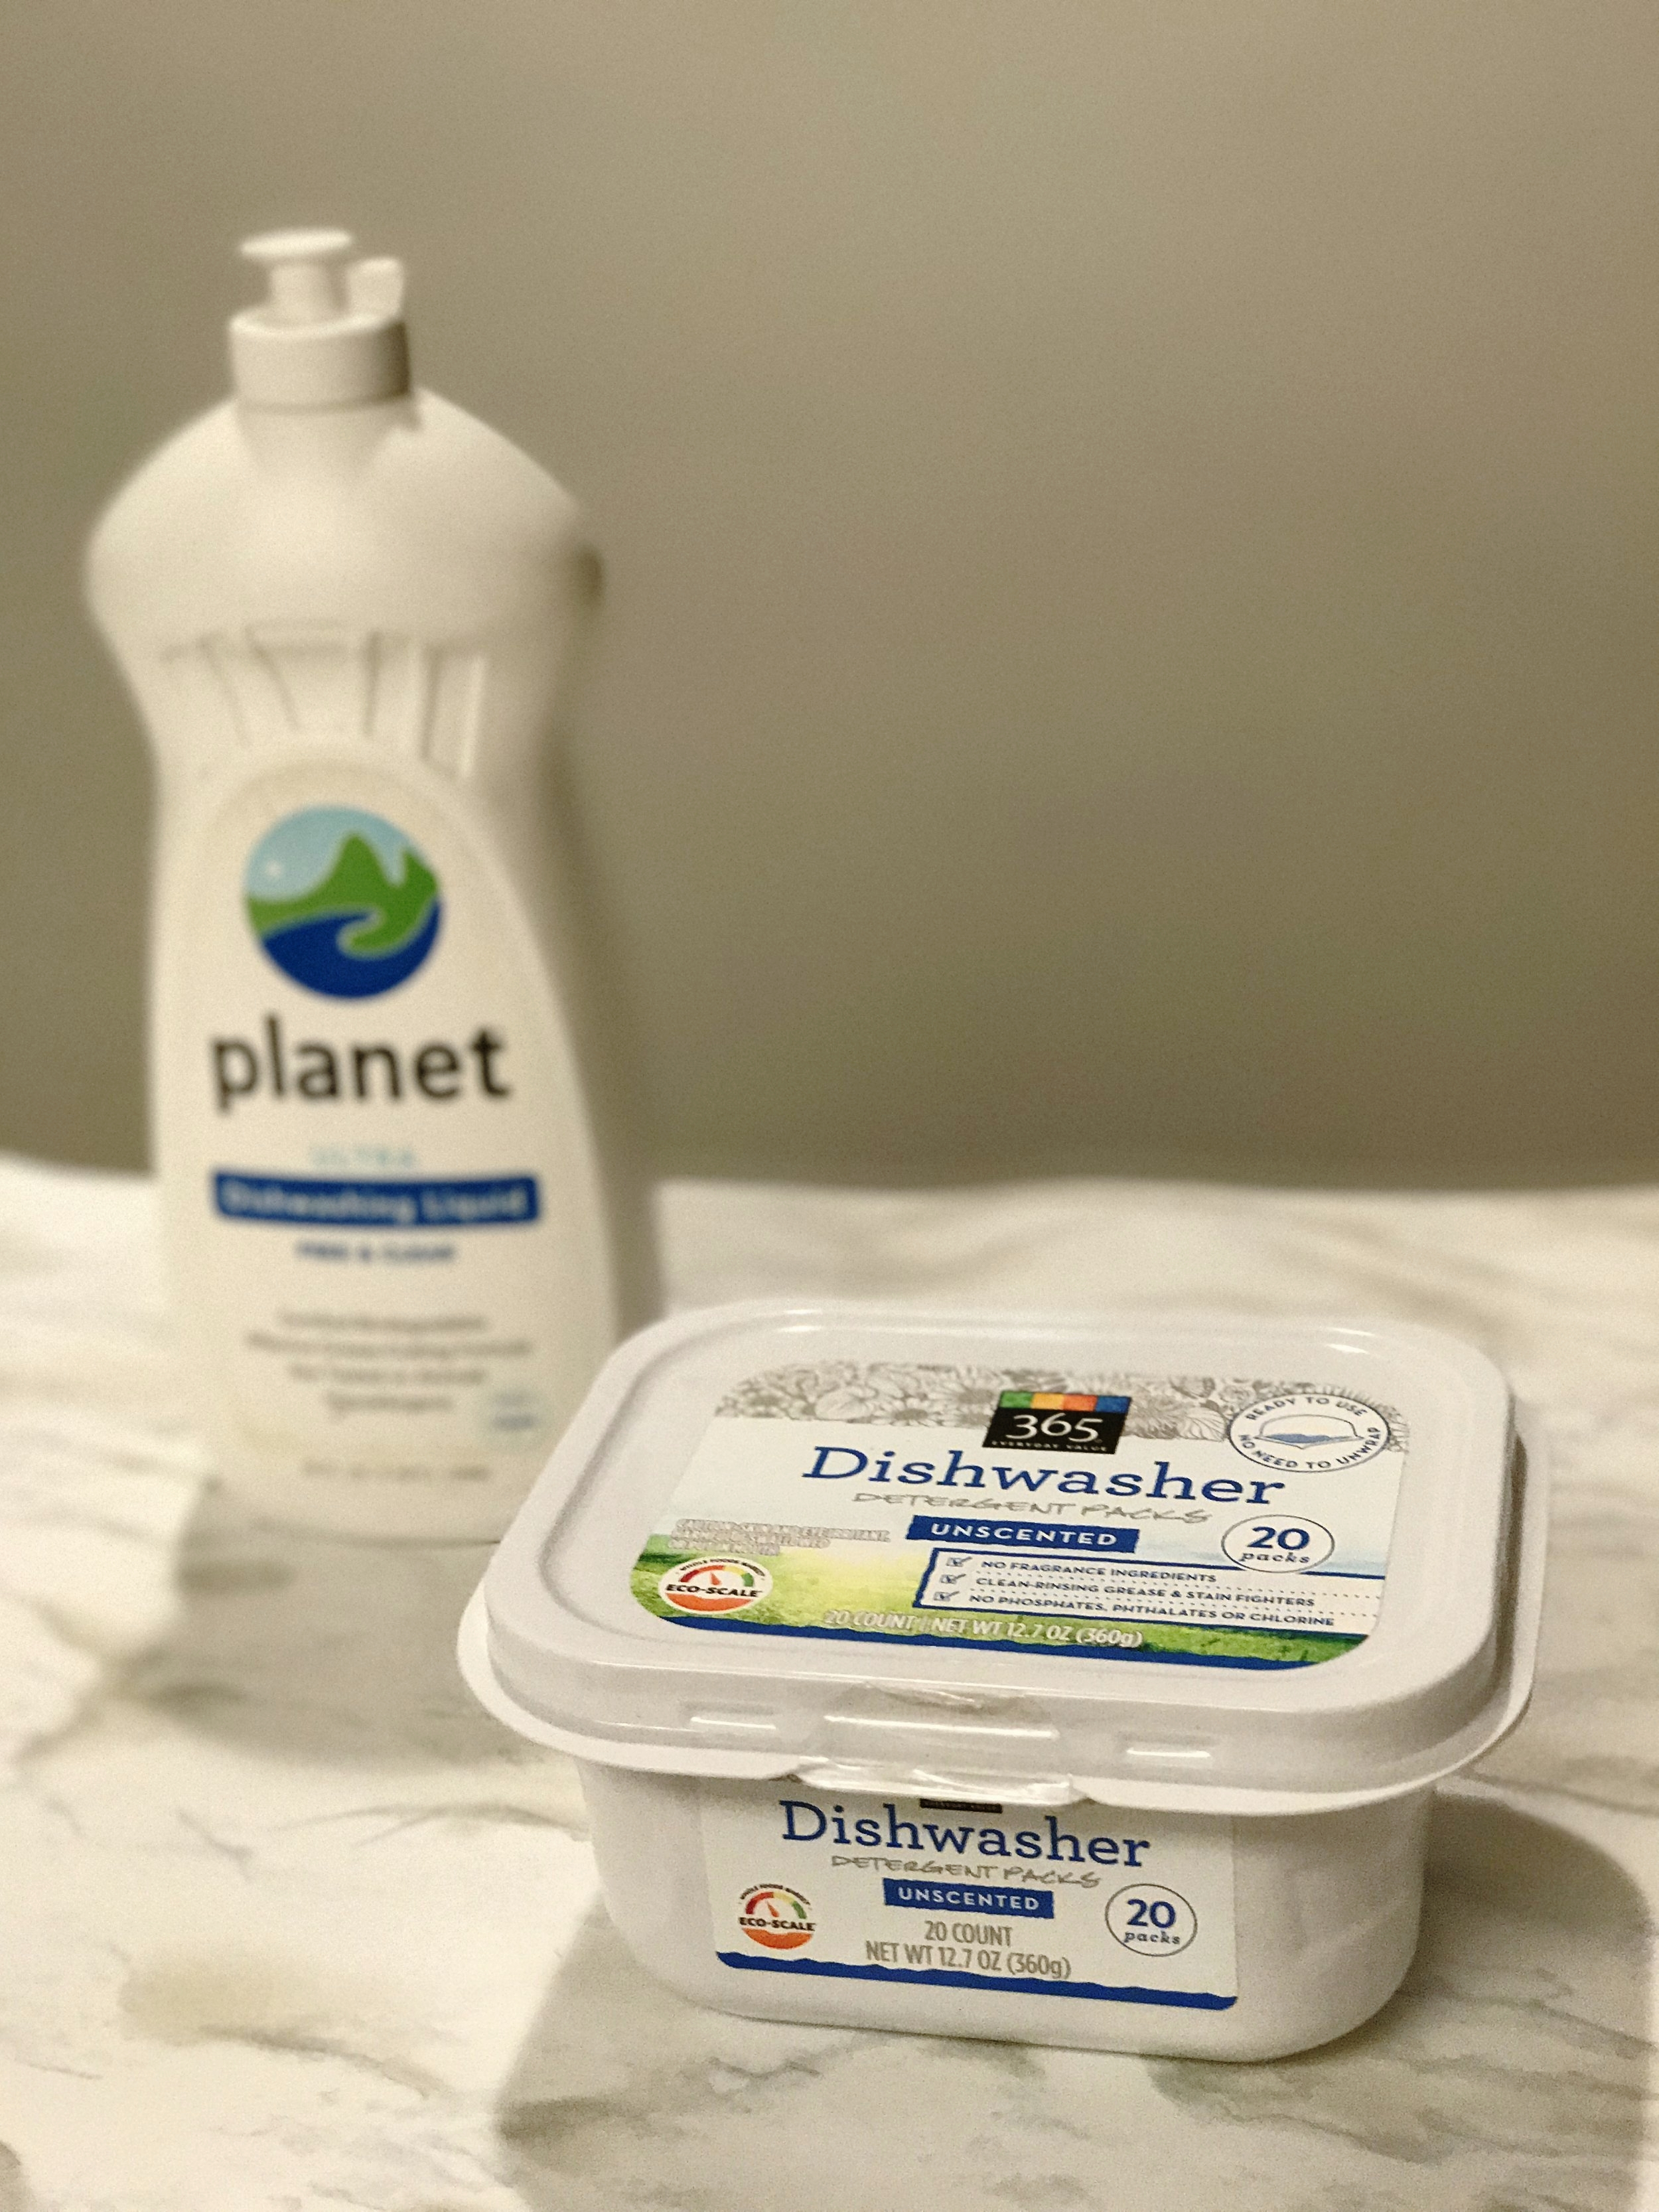 I swapped out Palmolive for  this dish soap  from Planet. I swapped out Cascade dishwasher pods for these 365 brand pods instead.